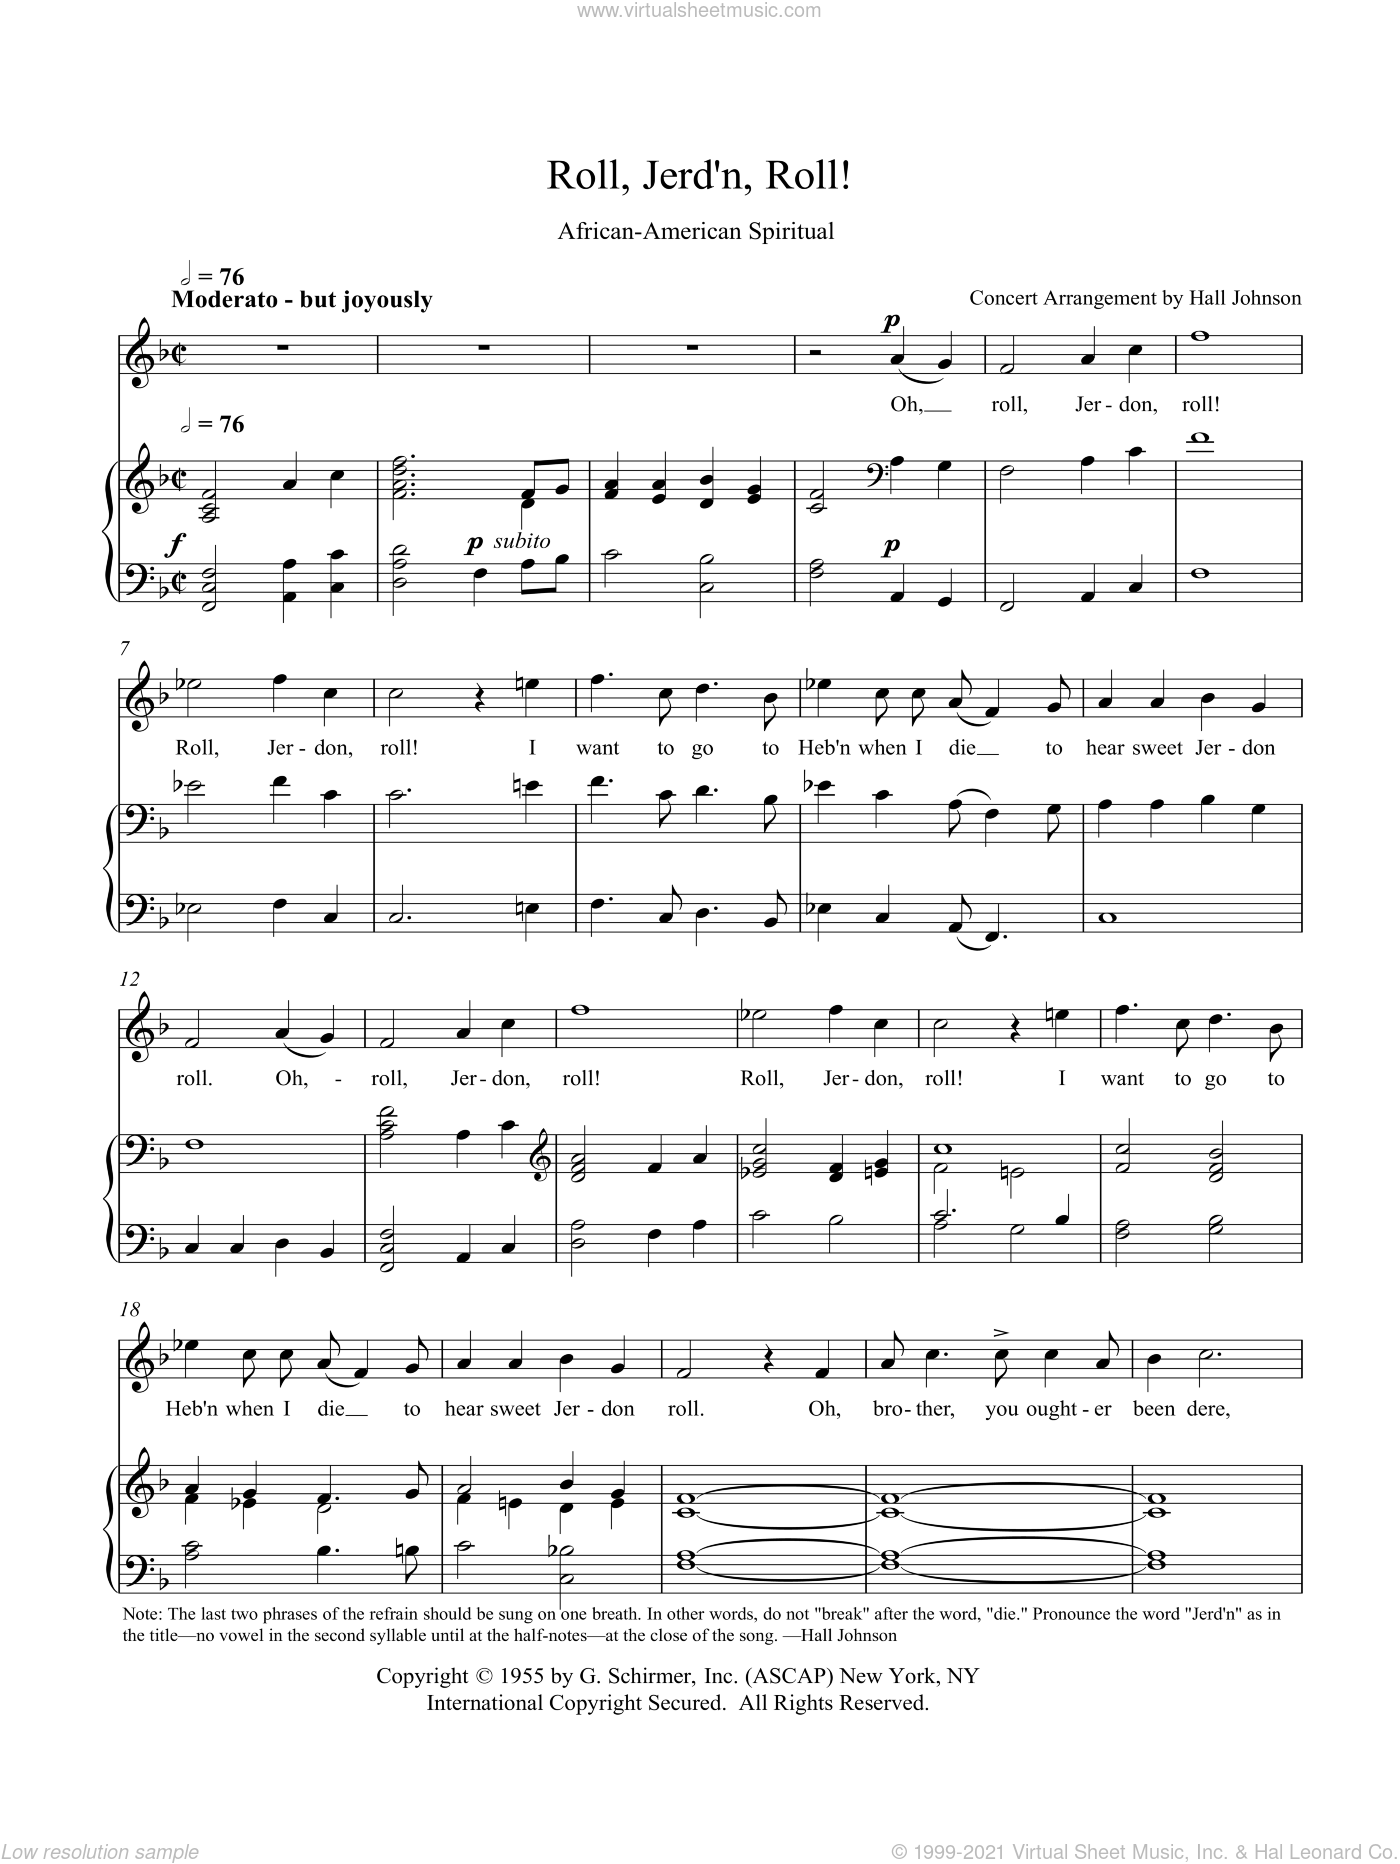 Roll, Jordan Roll (F) sheet music for voice and piano by Hall Johnson, classical score, intermediate skill level